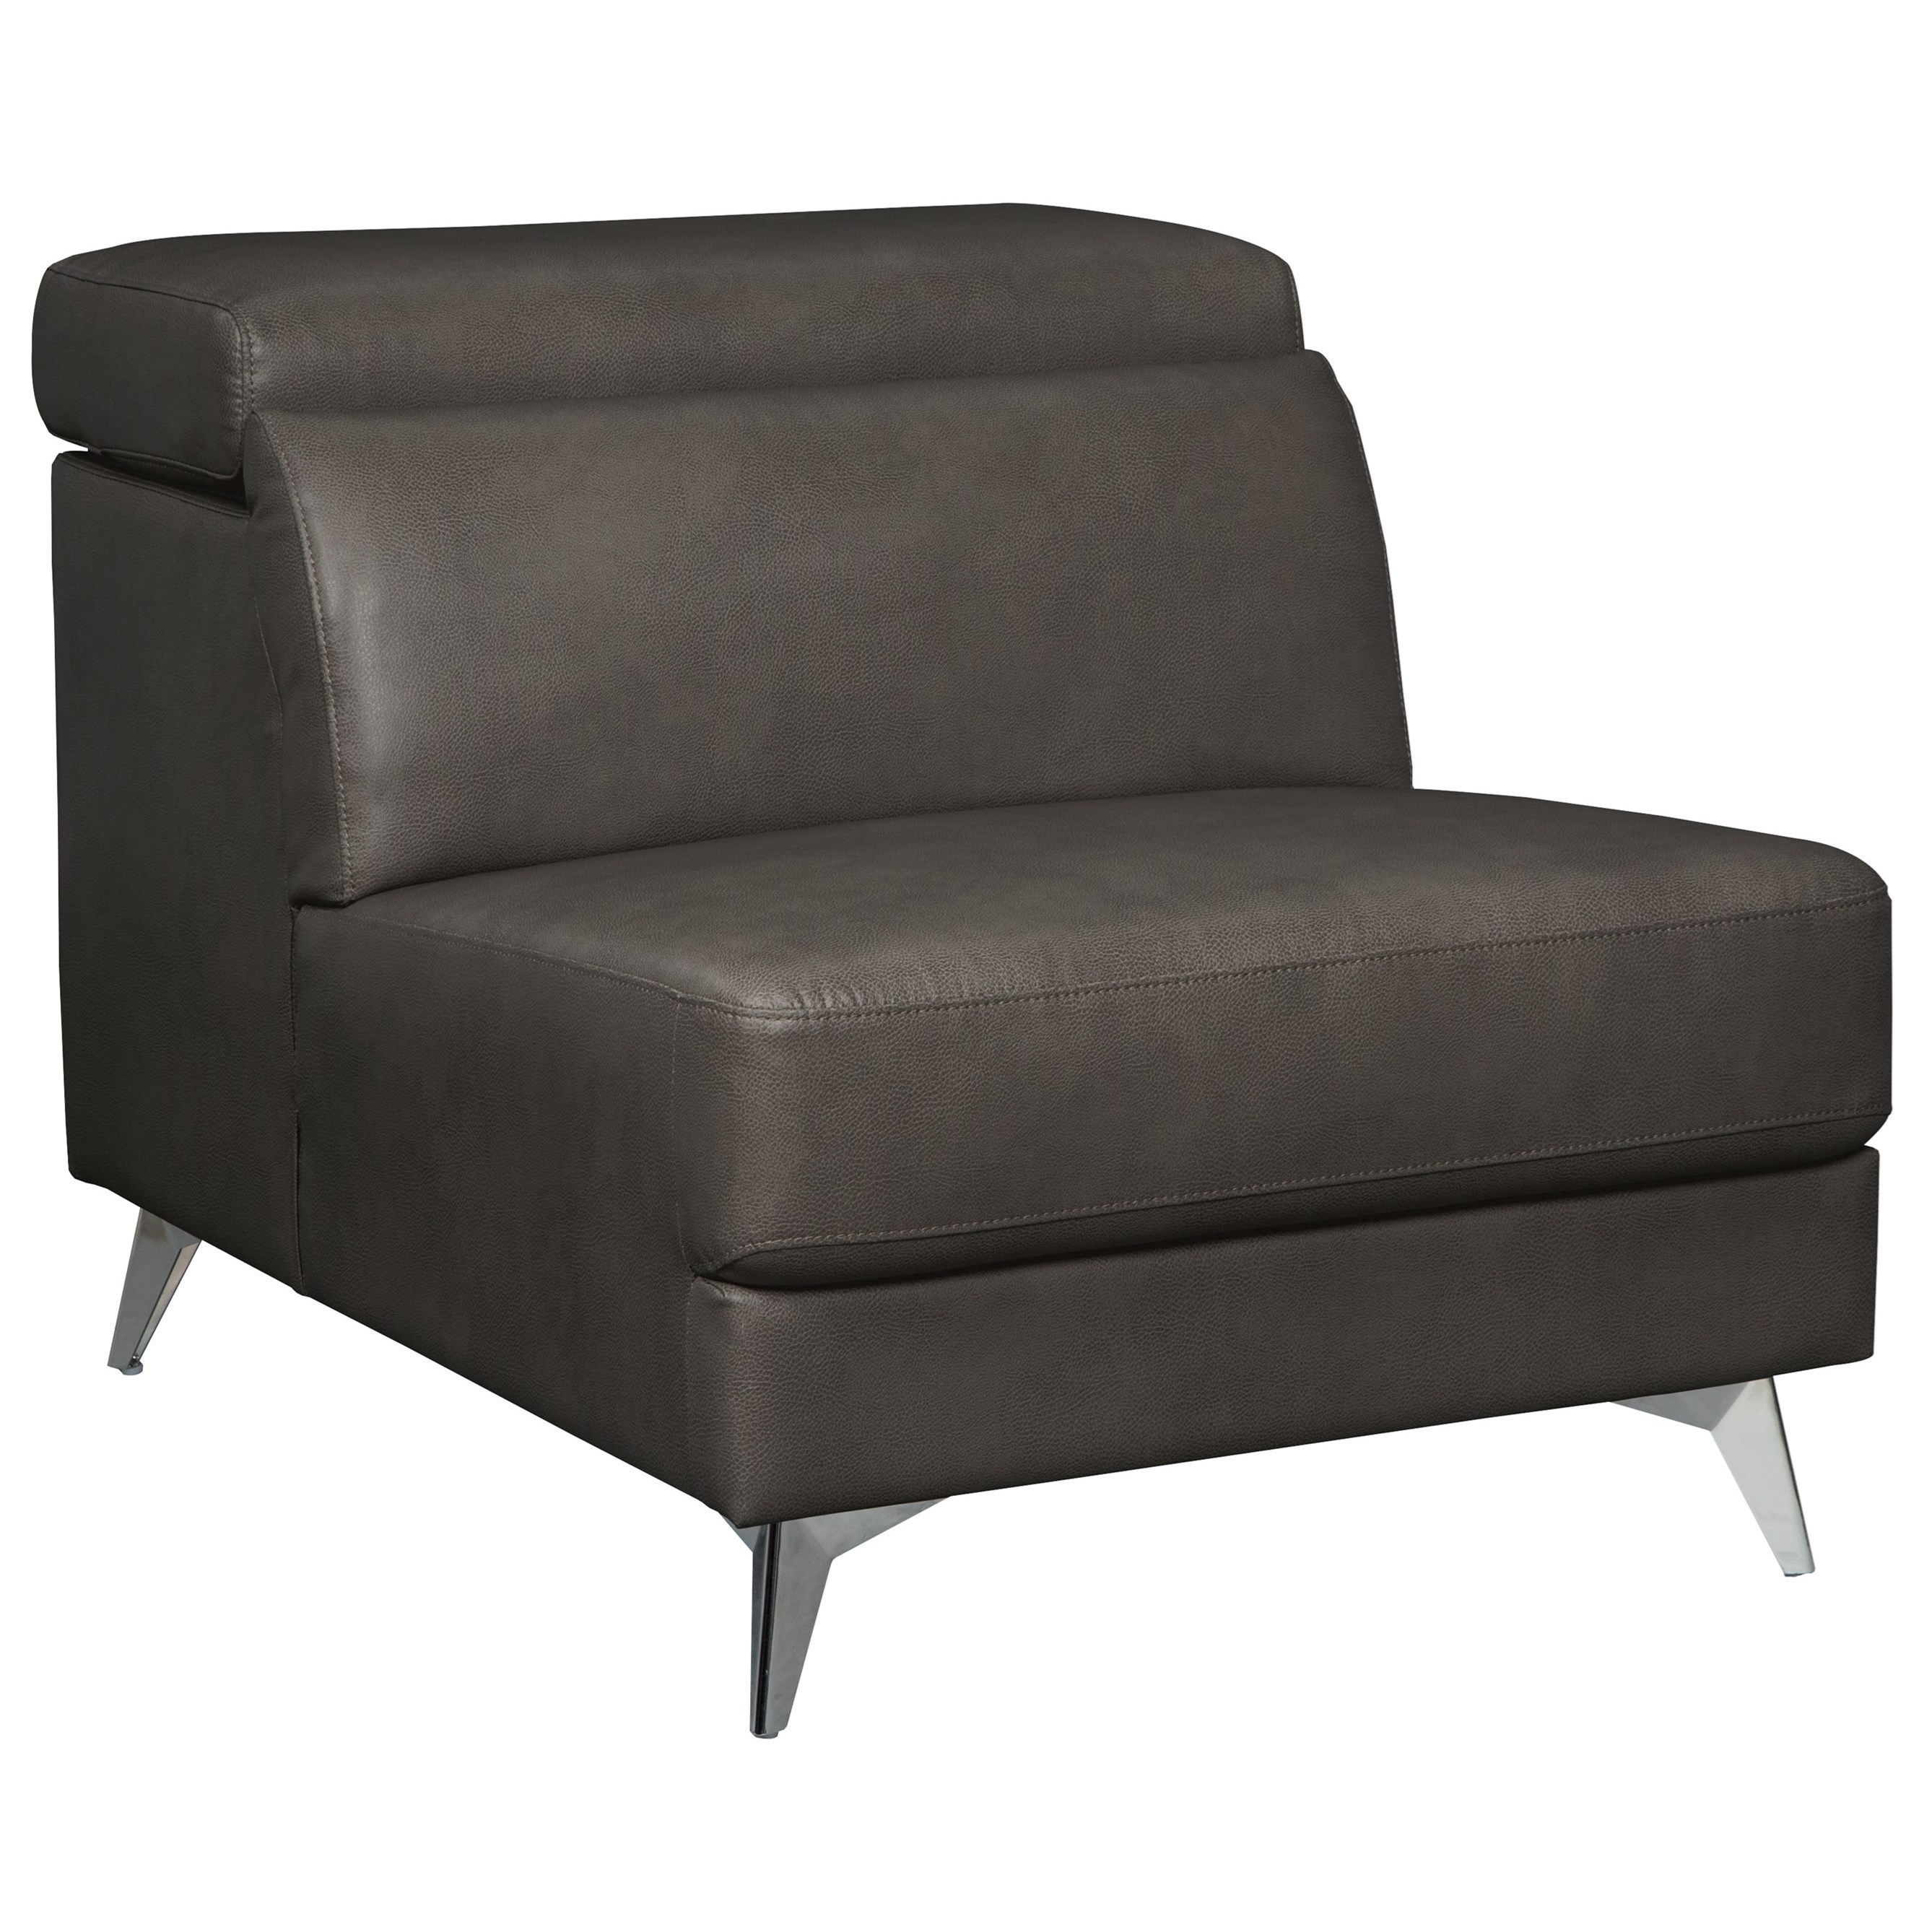 armless sofas design good cheap uk signature by ashley tindell contemporary